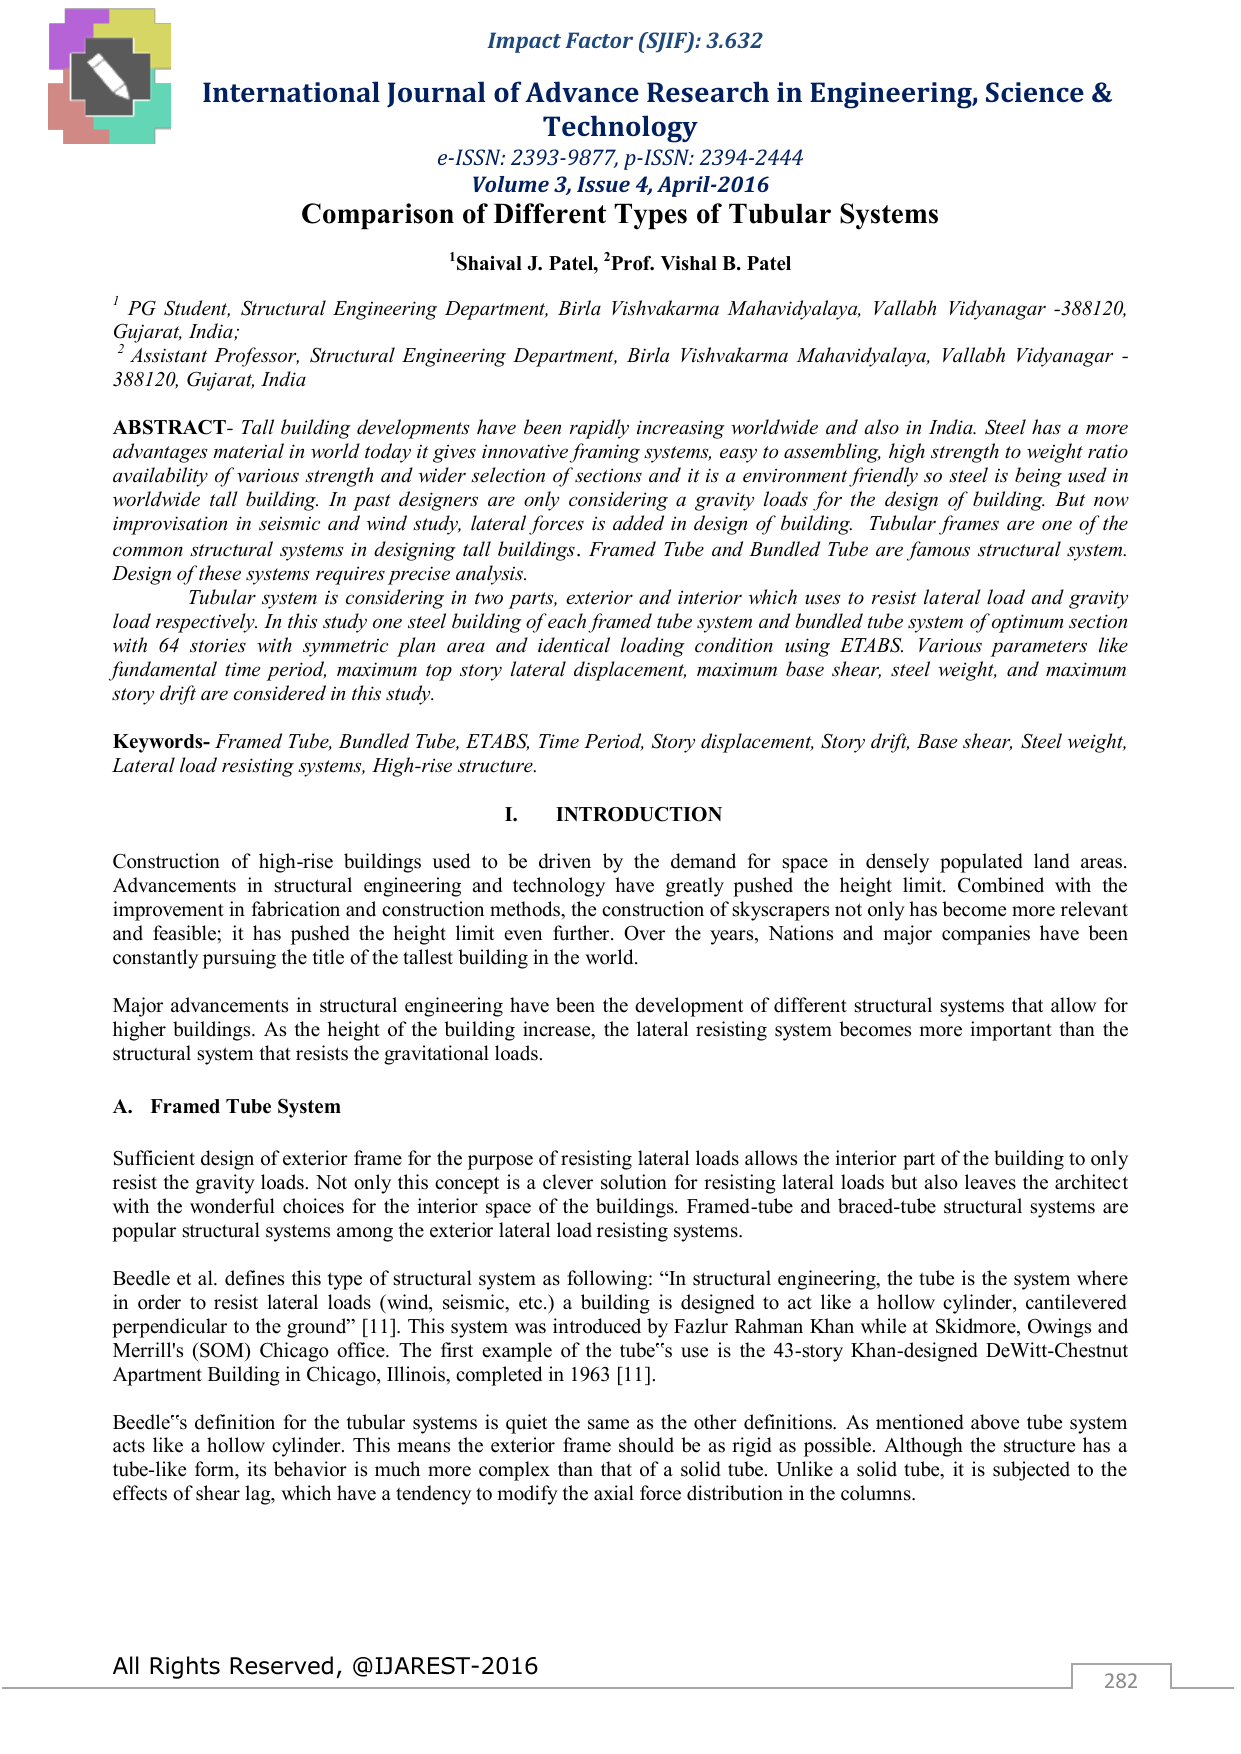 International Journal of Advance Research in Engineering